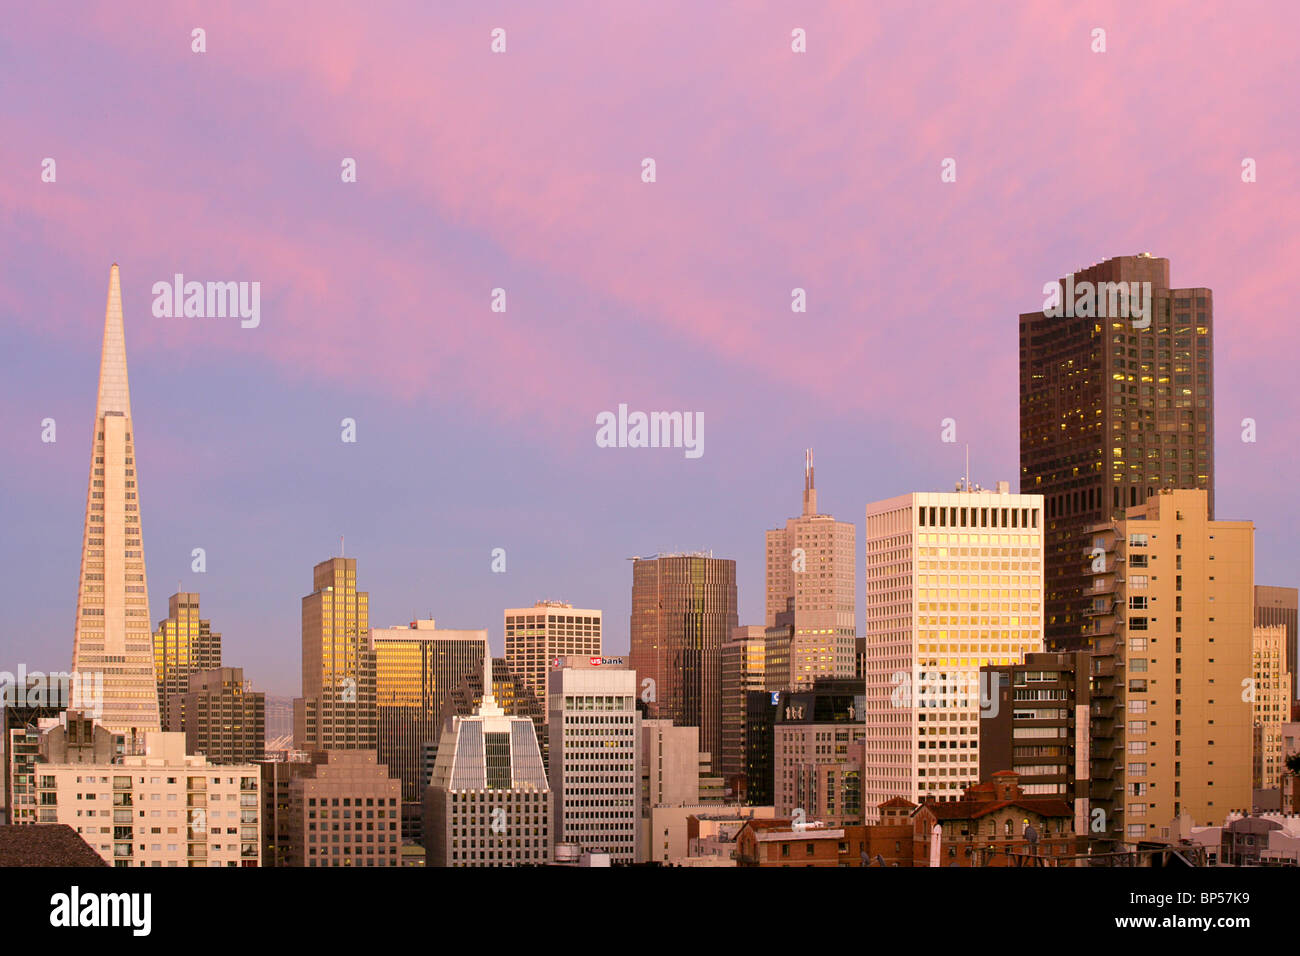 The San Francisco skyline during a dramatic sunset - Stock Image